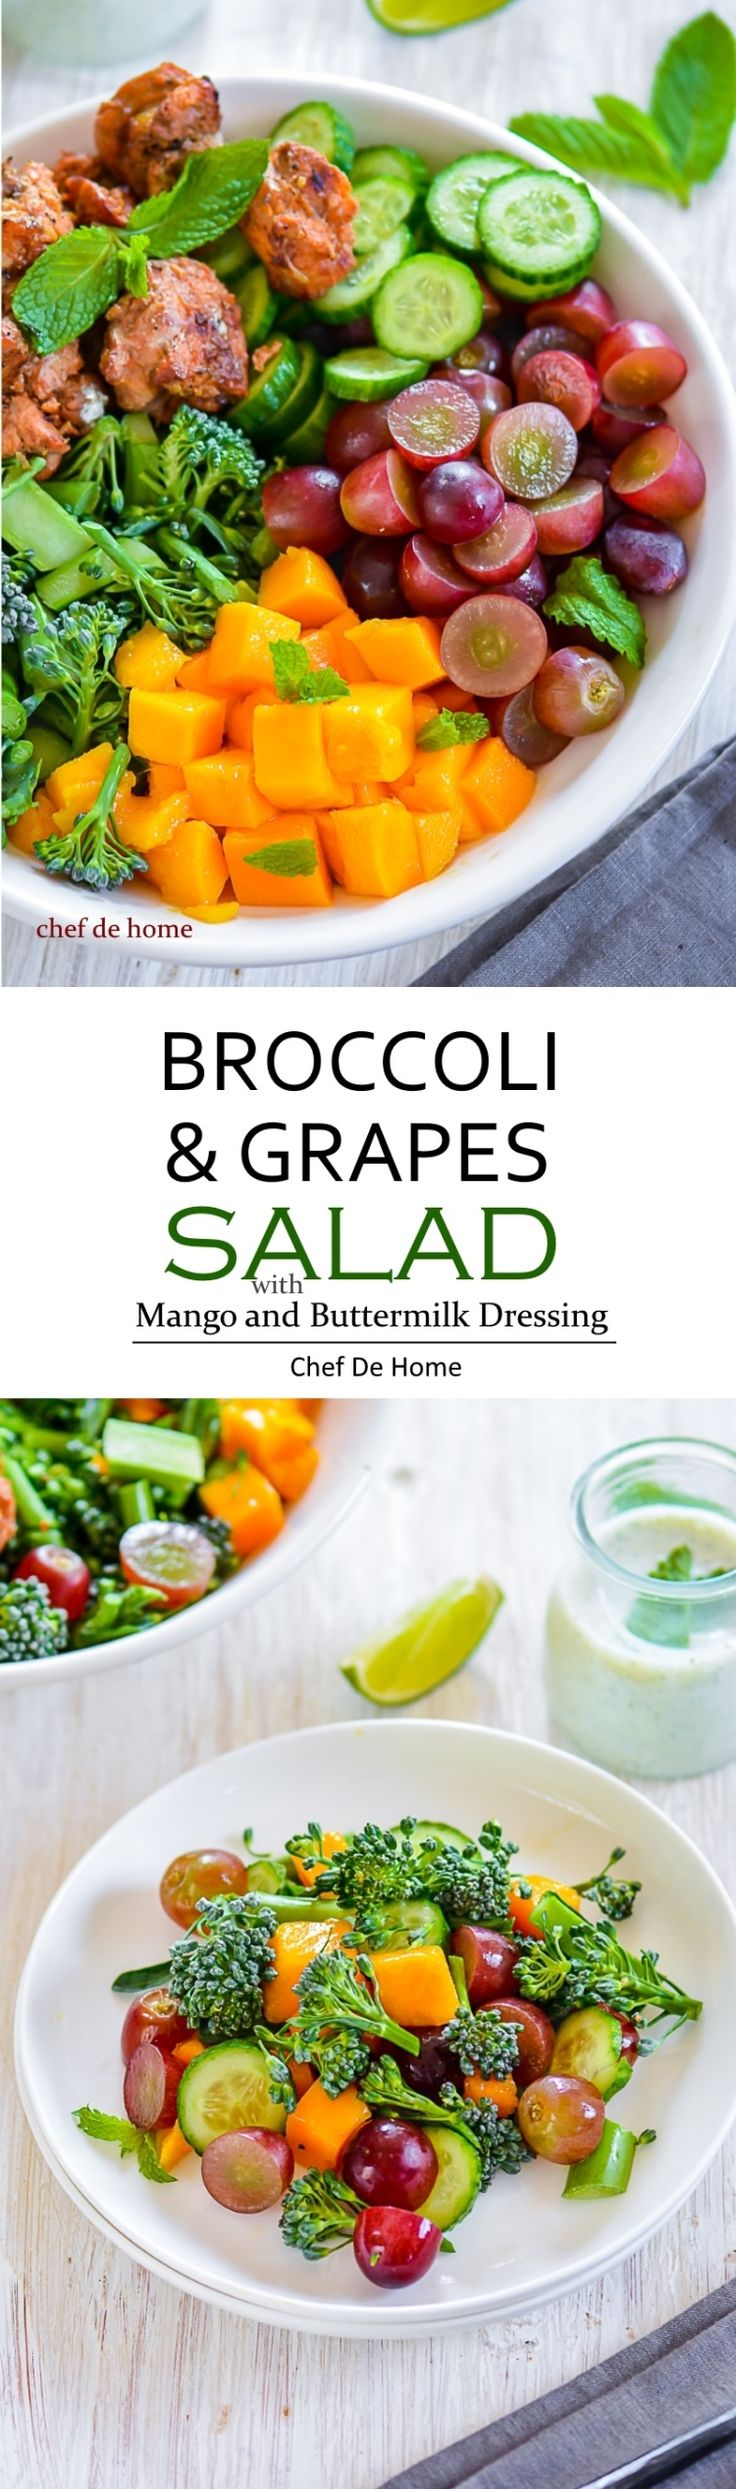 Broccoli Salad with Grapes and Chicken makes a complete healthy and carb free summer meal | chefdehome.com